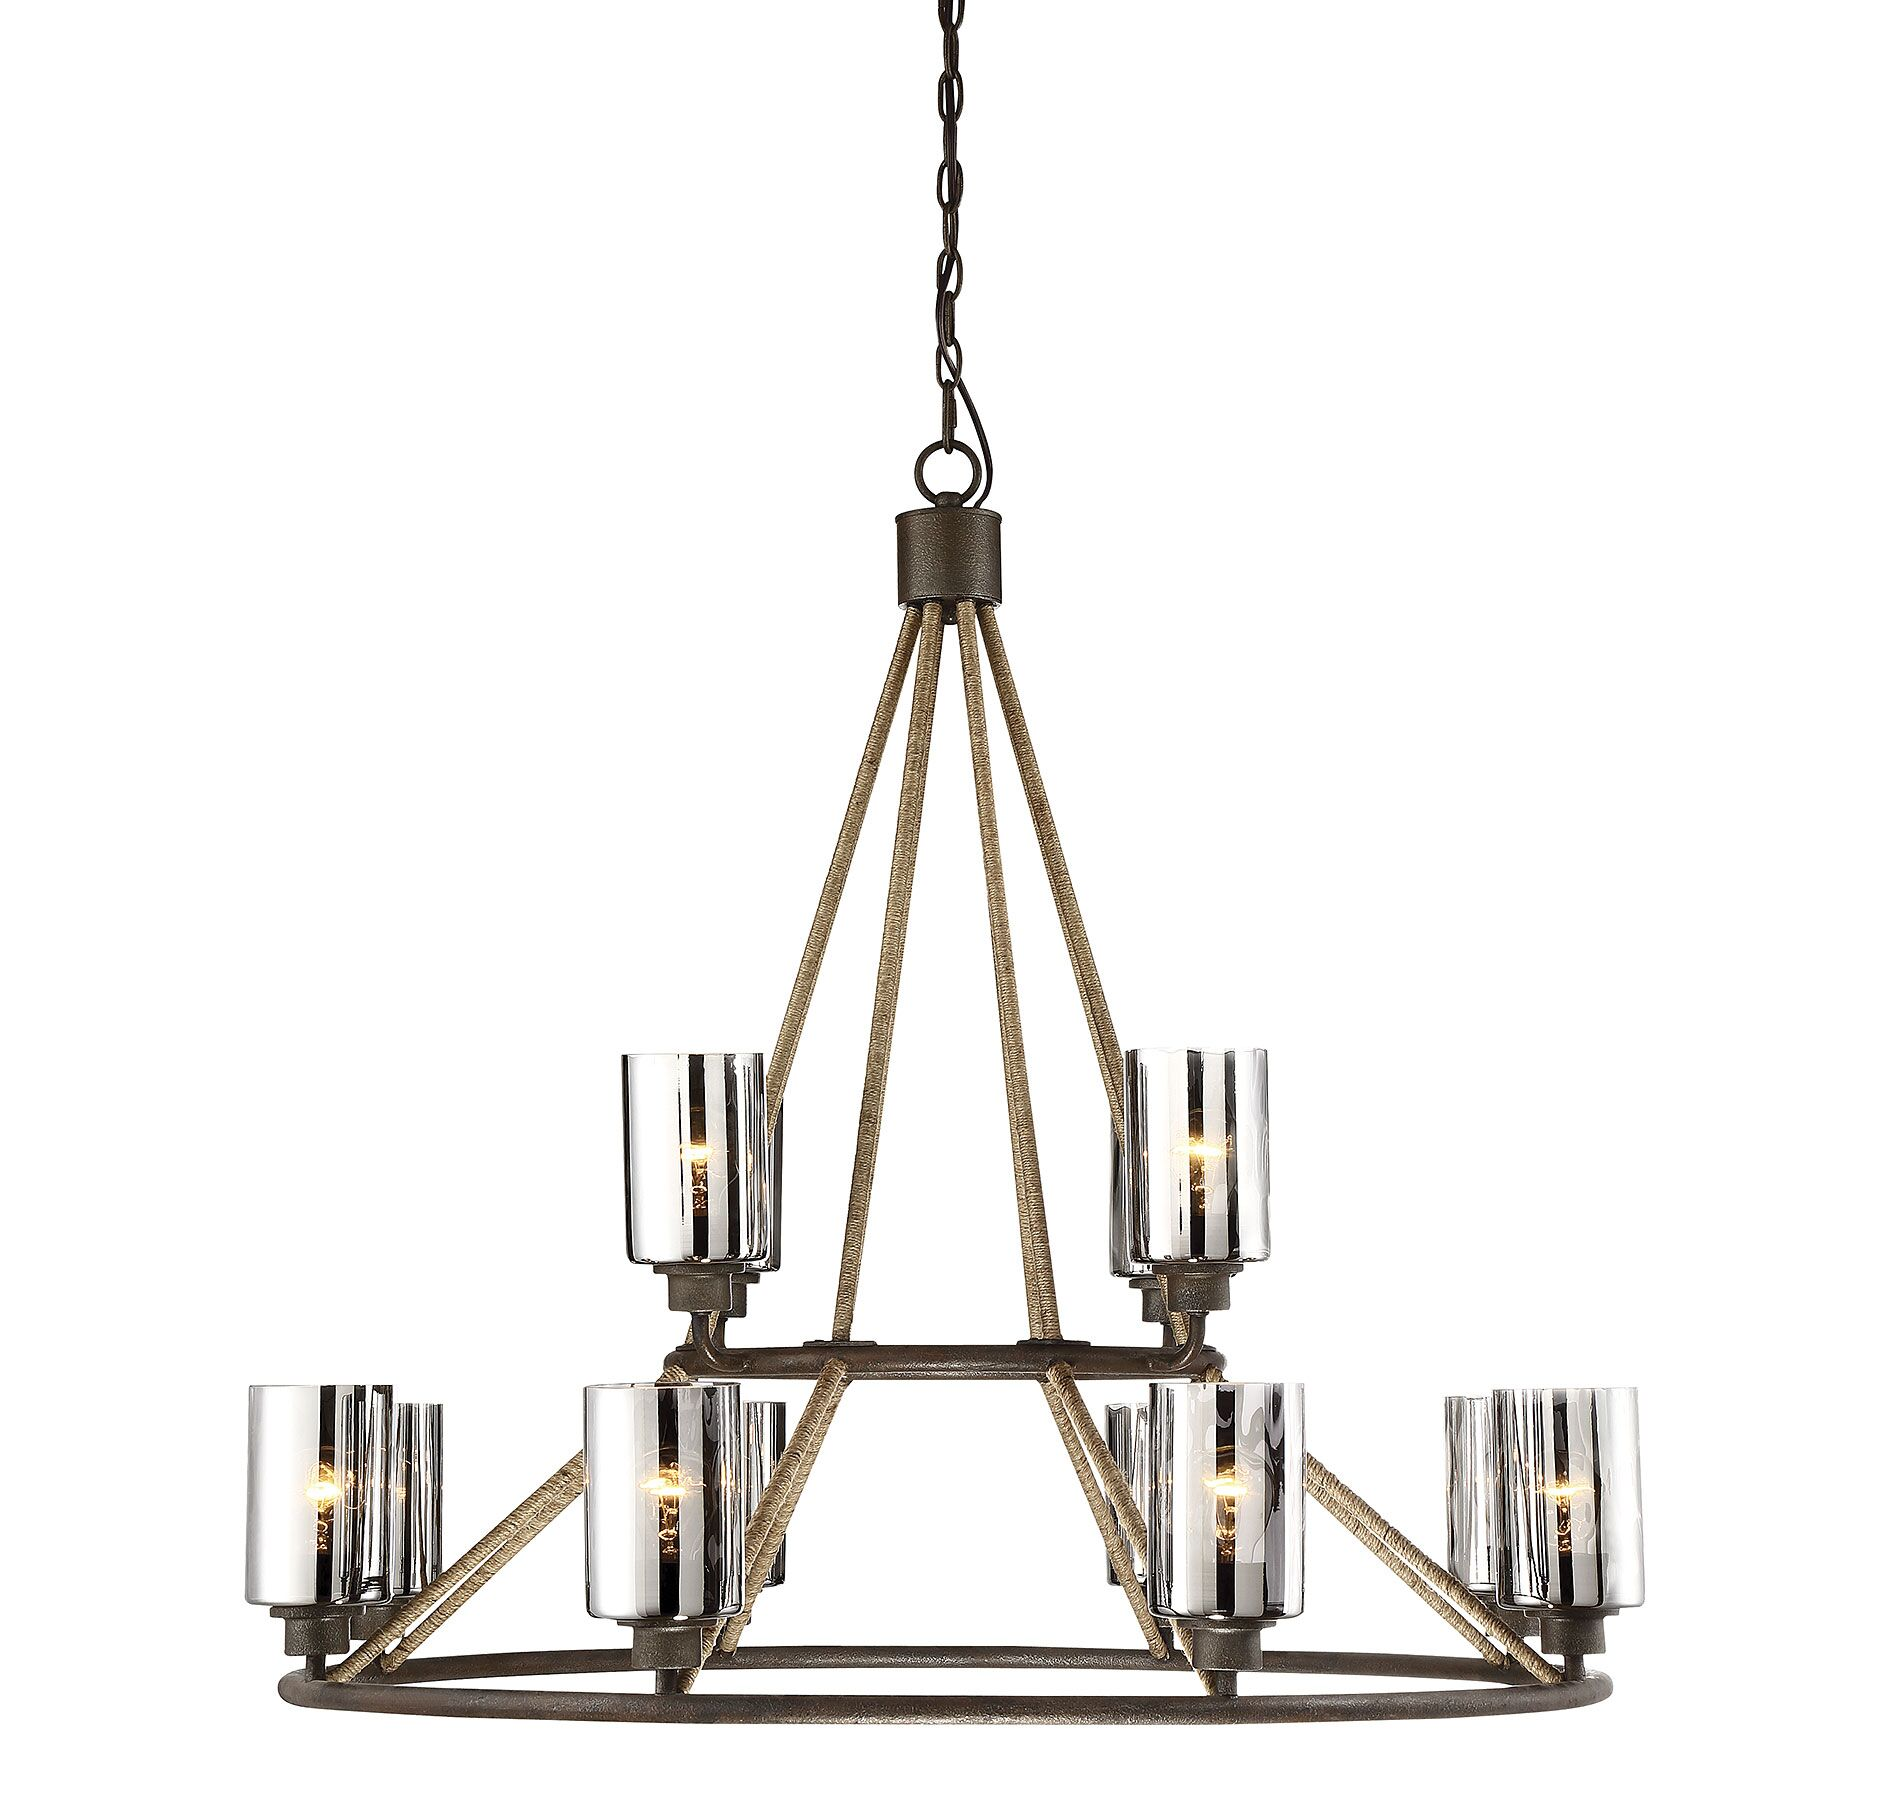 Adley 12-Light Shaded Chandelier